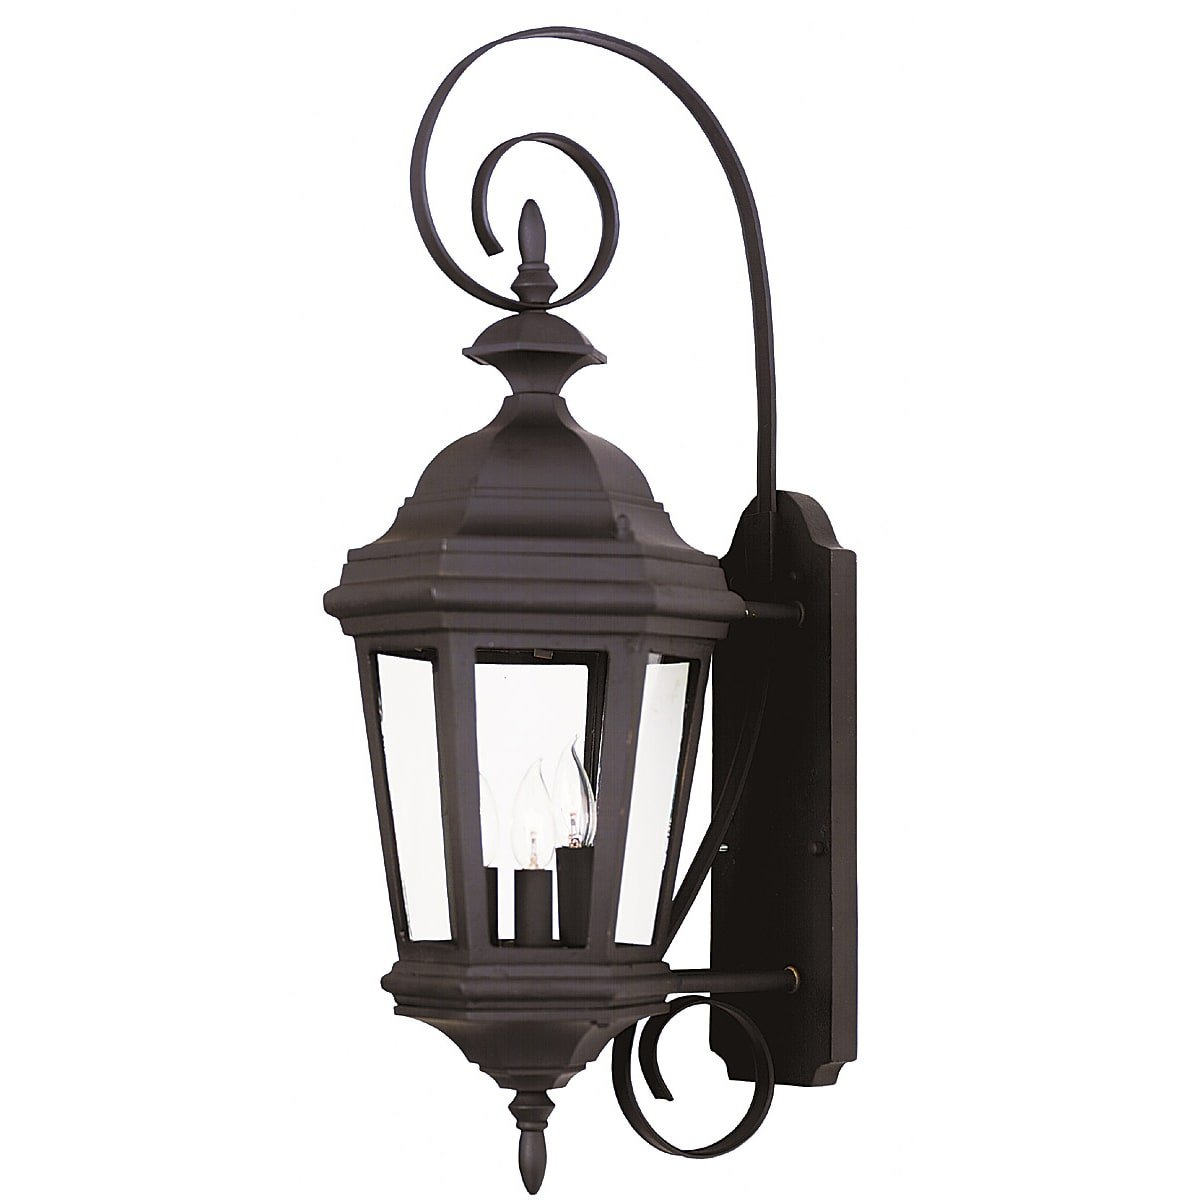 Design Craft Oscar Medium 3-light Wall Lantern